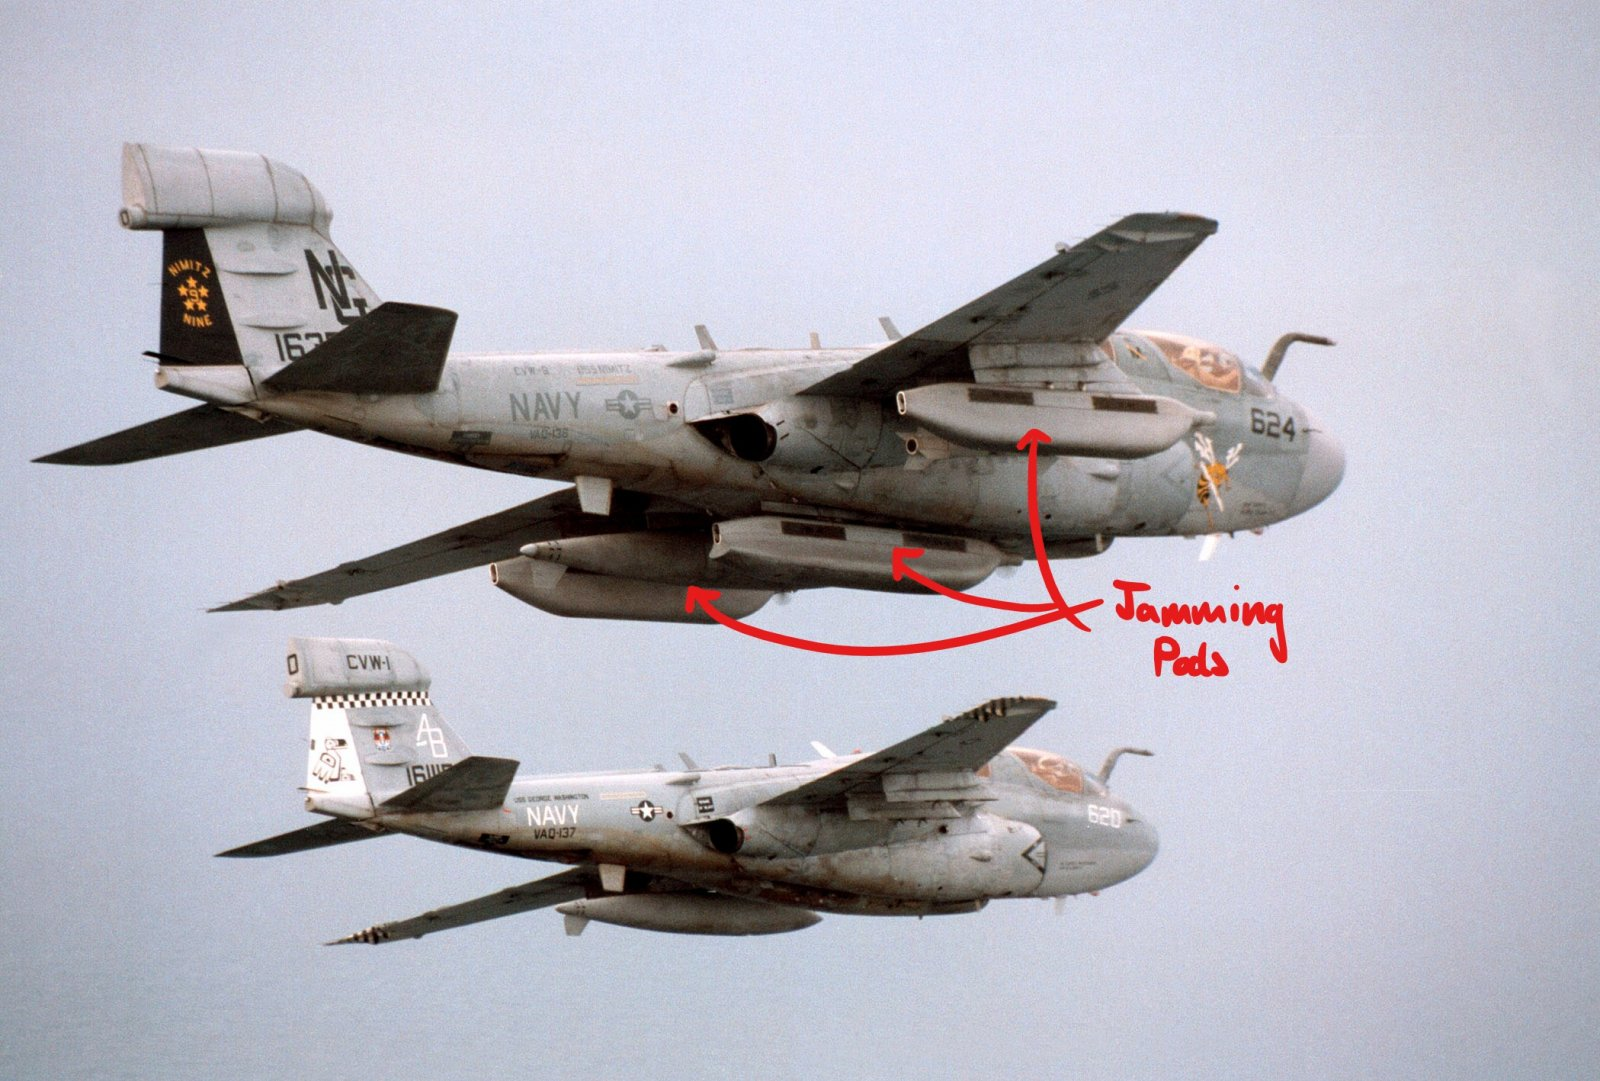 EA-6B_Prowlers_supporting_Southern_Watch_from_CVN-73_LI.jpg